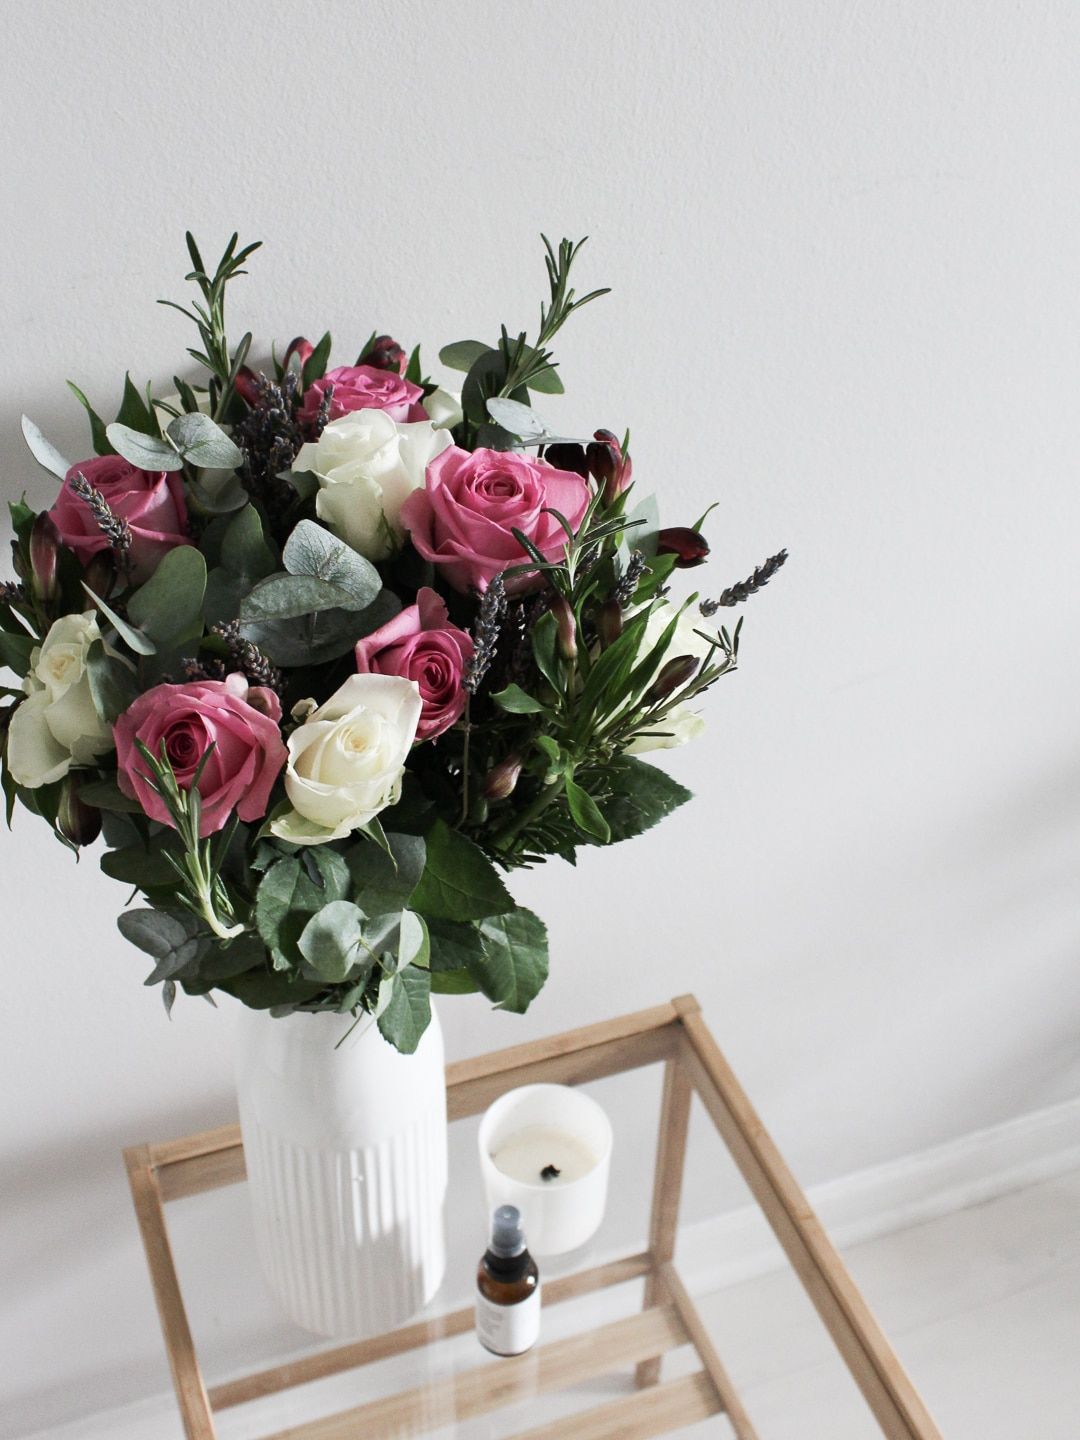 Bouquet of flowers on a small wooden table